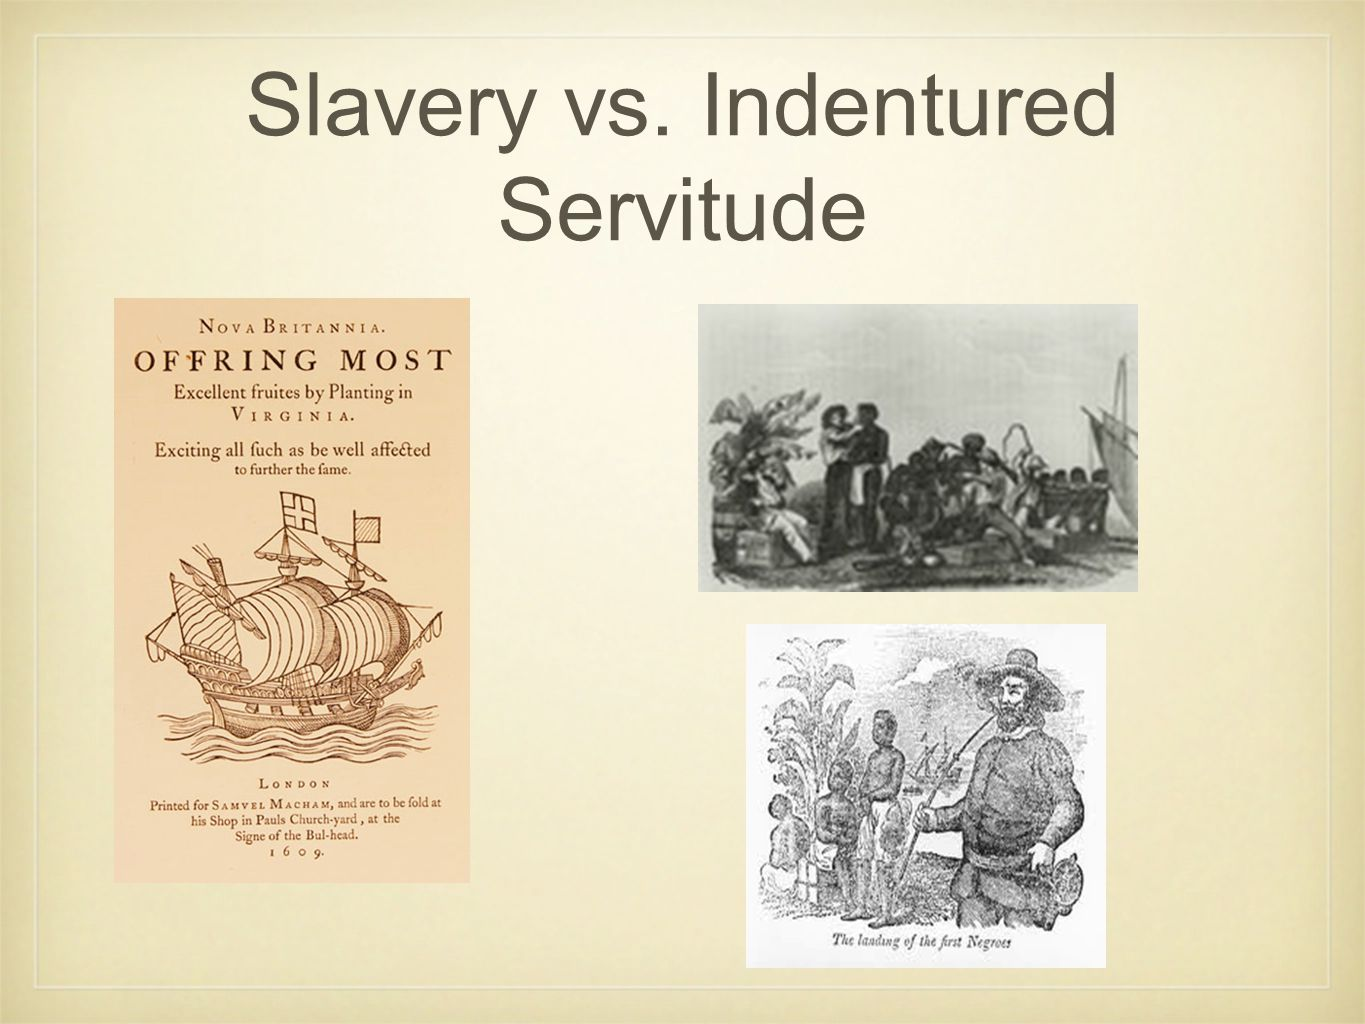 Slavery vs. Indentured Servitude